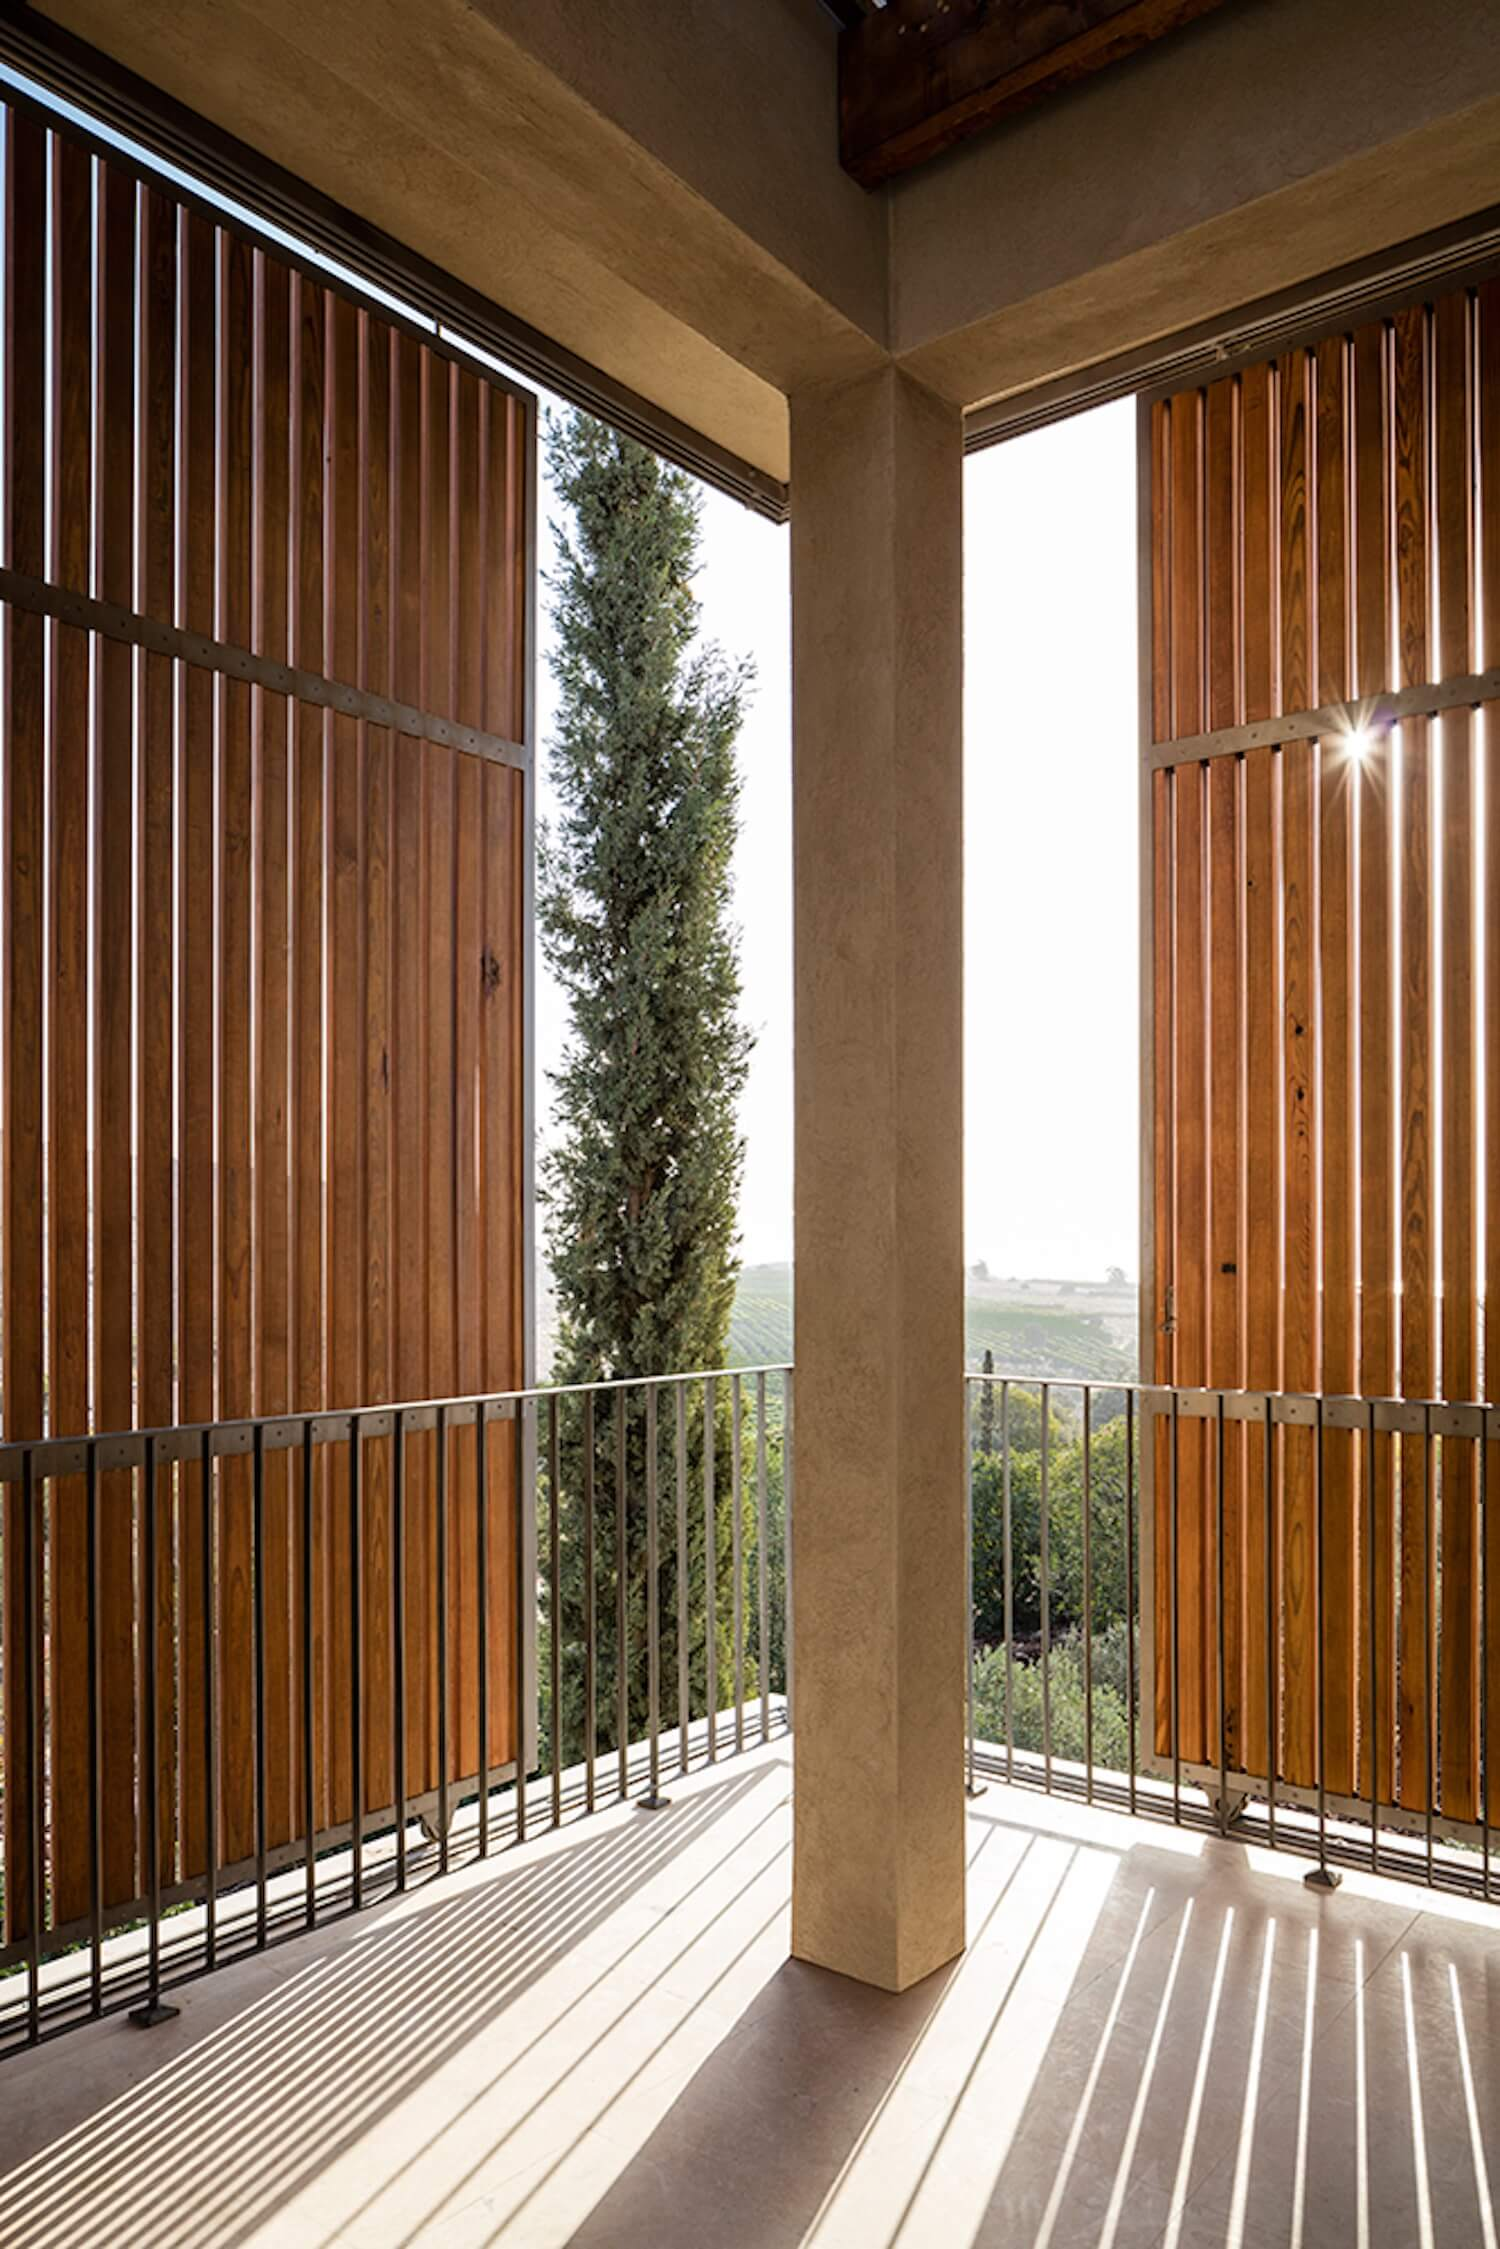 est living global interiors 40 Golany Architects Residence in the Galilee Amit Geron